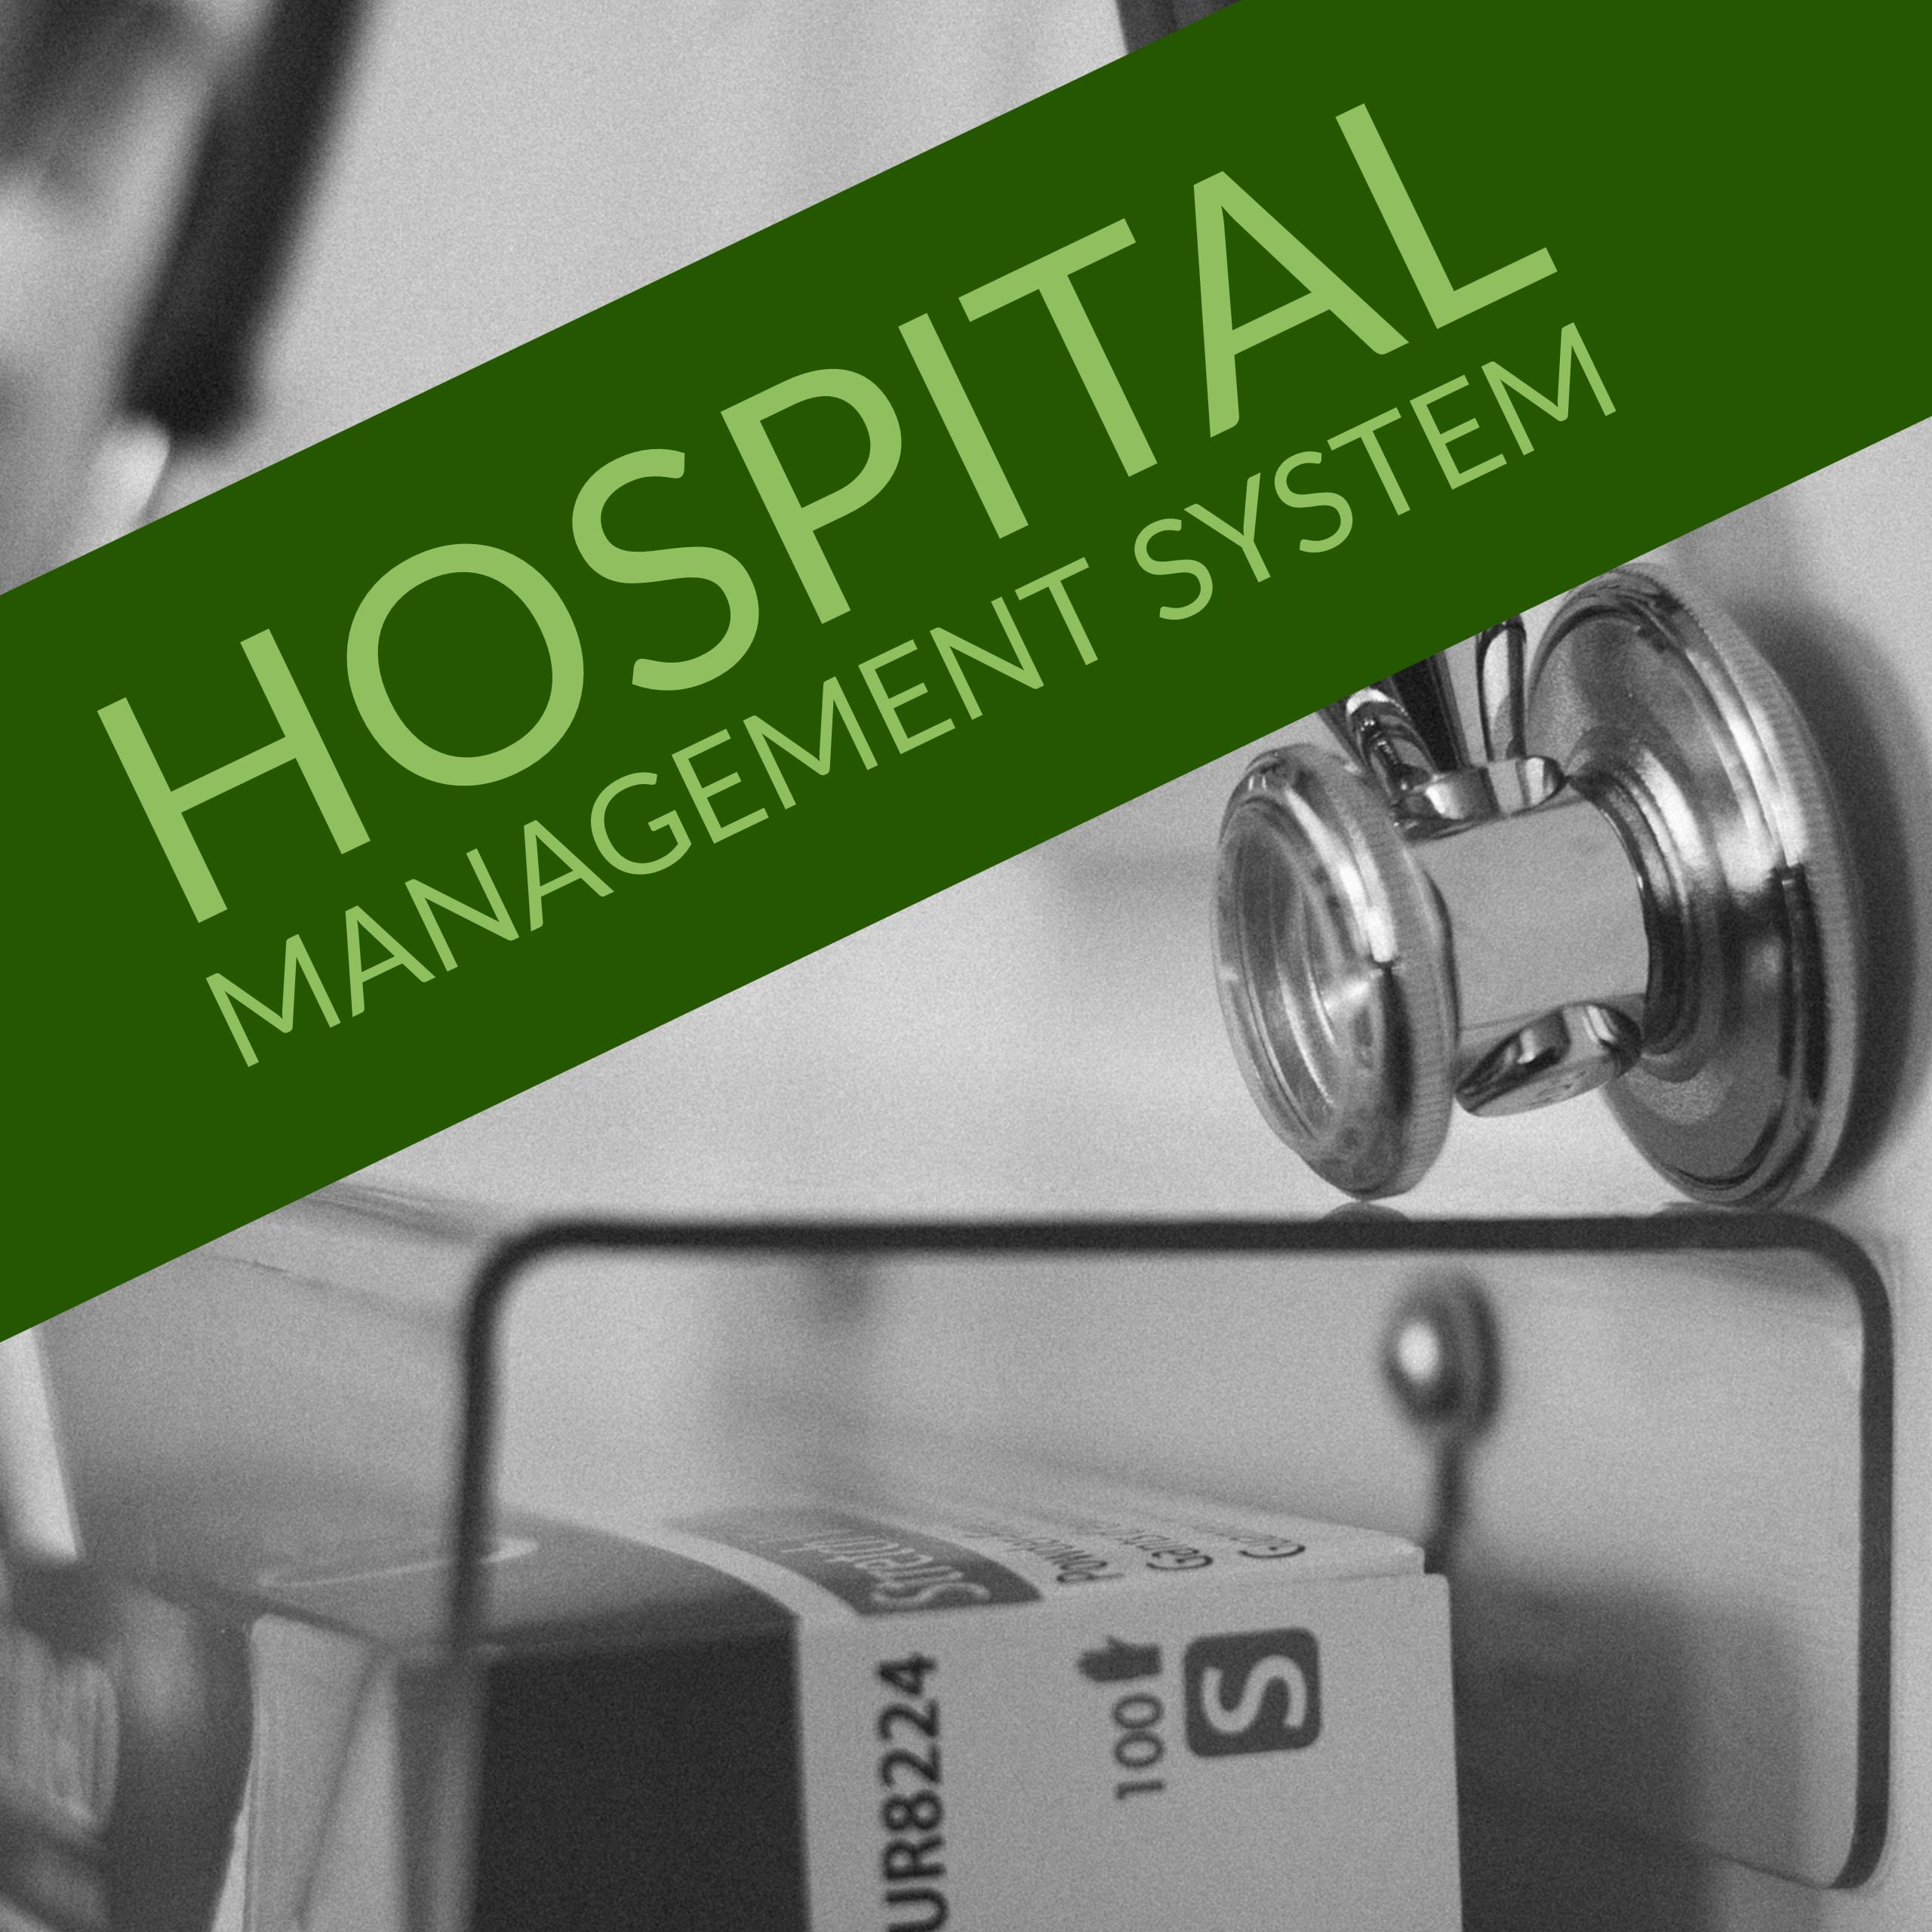 Hospital Management system - CodeMint Mint for Sale